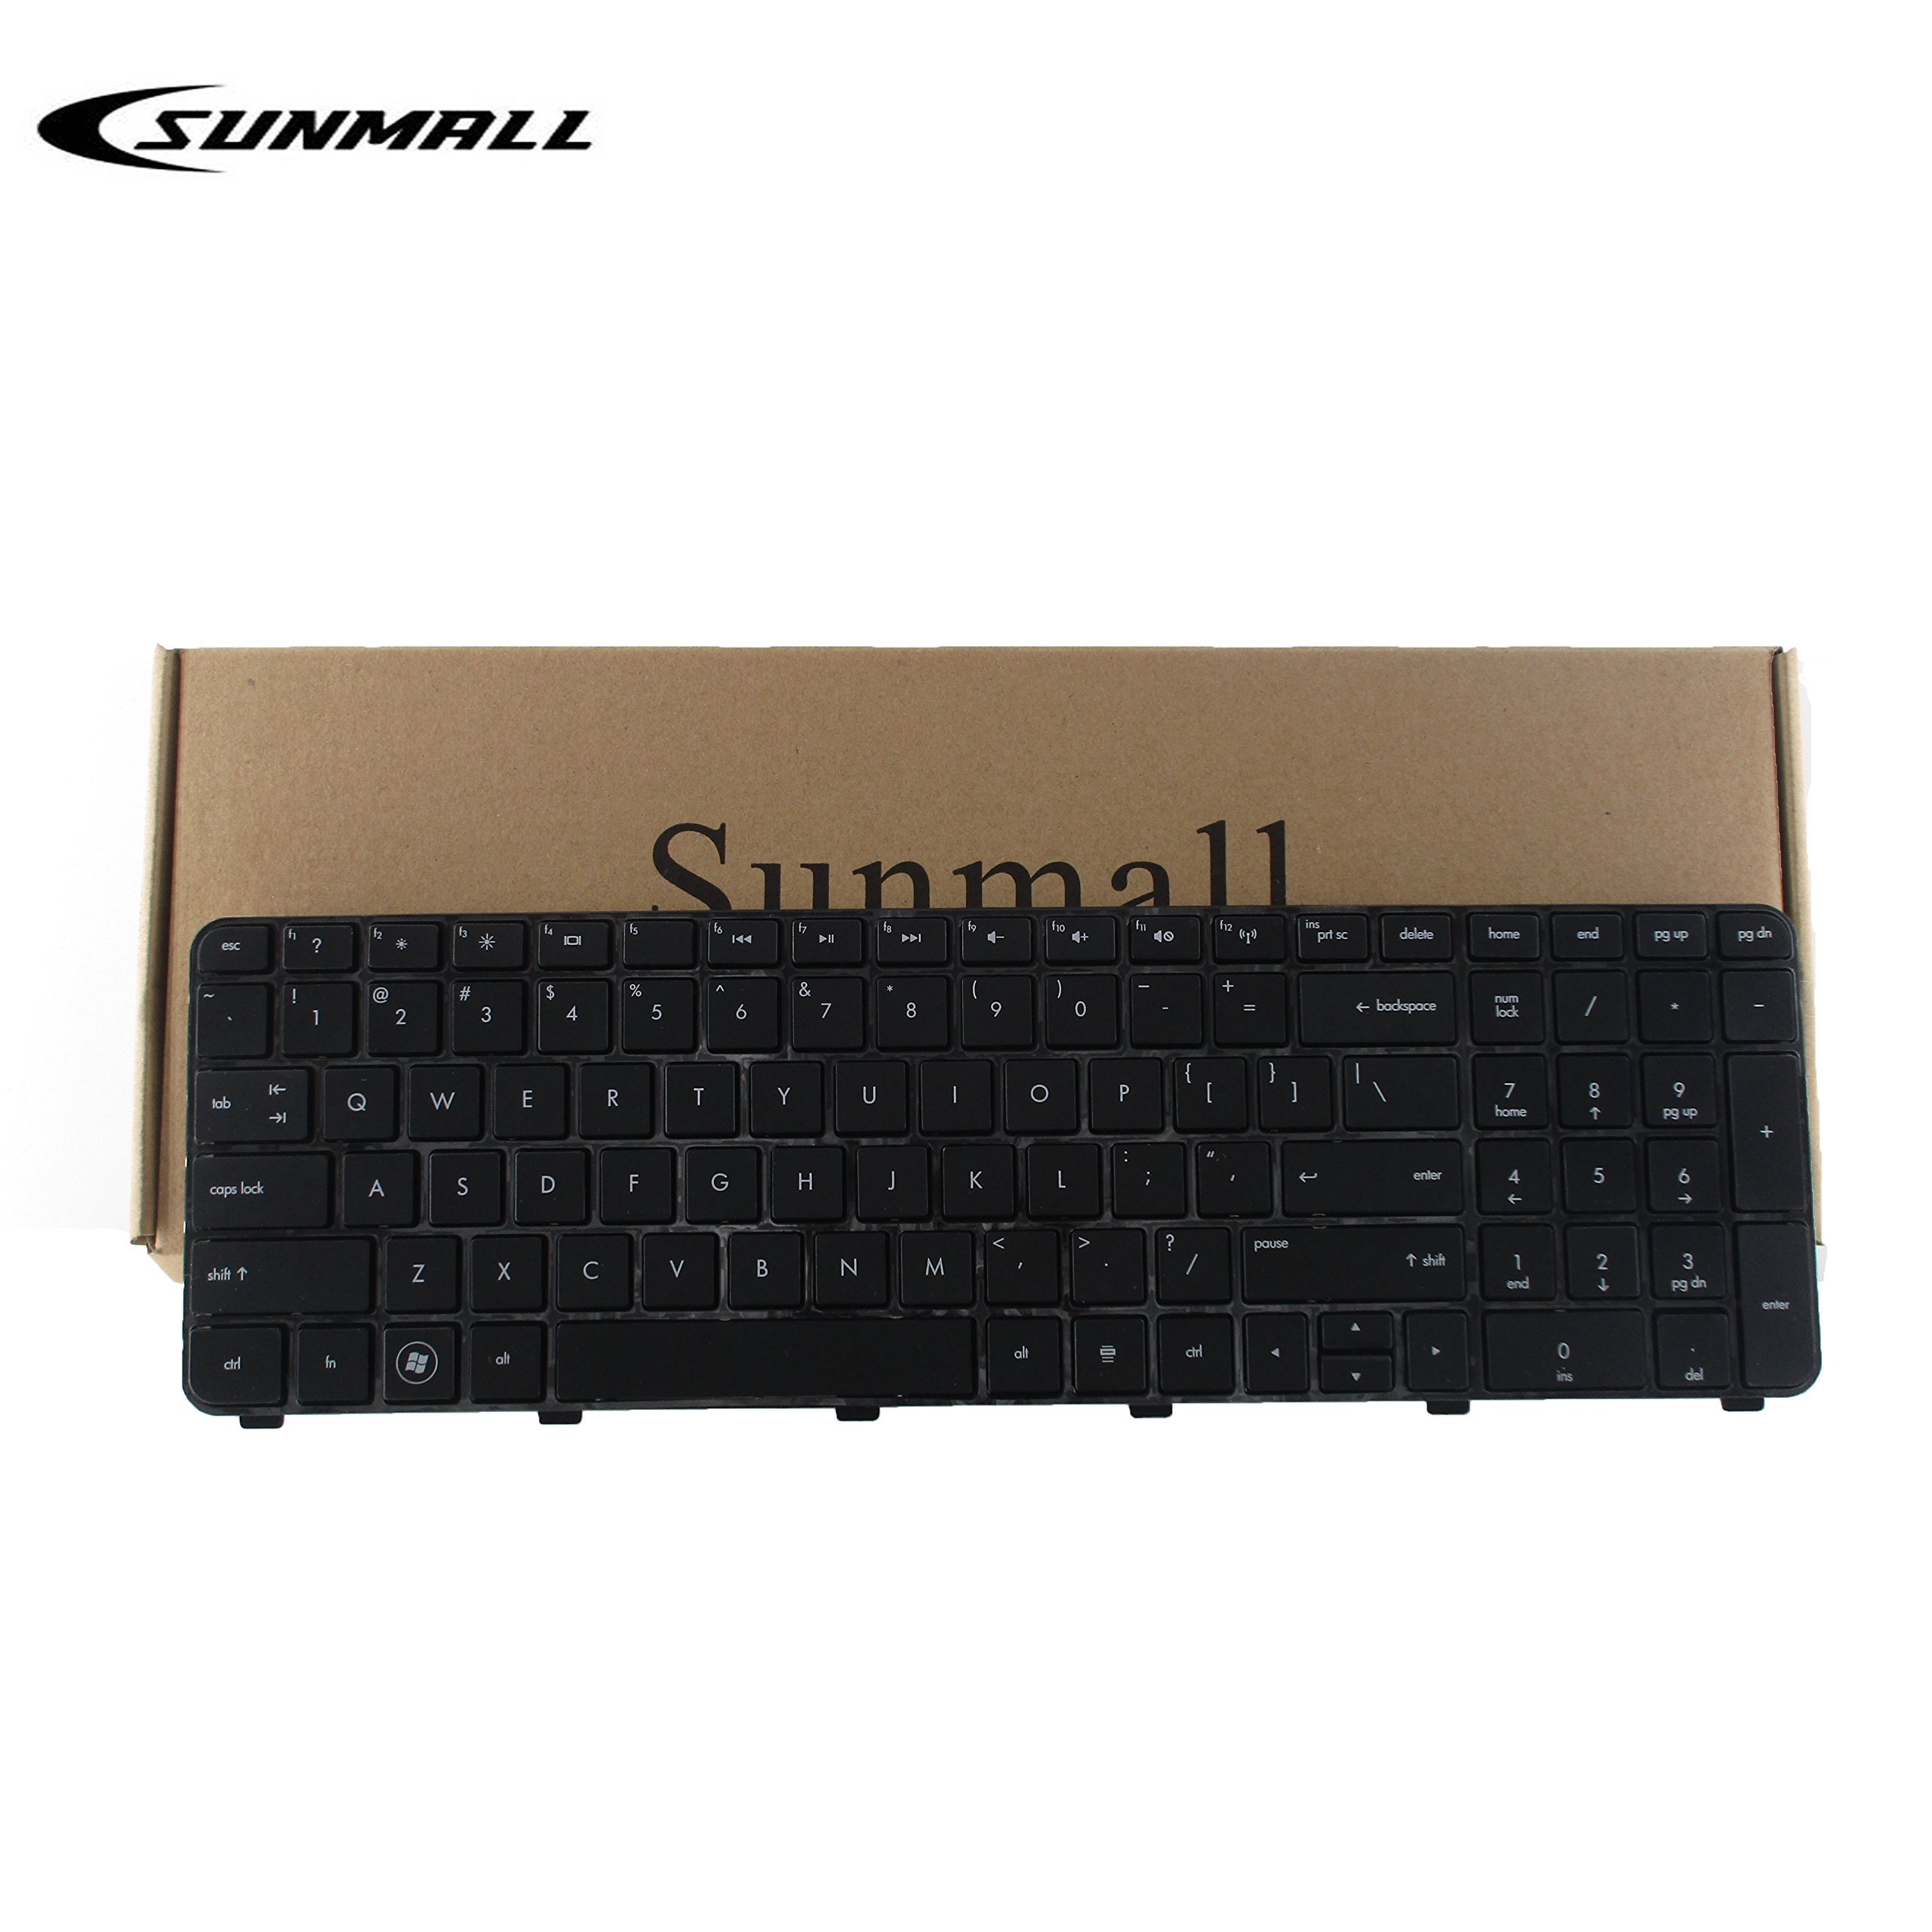 SUNMALL Laptop Keyboard Replacement for HP Pavilion DV7-6000 DV7-6100 DV7-6200 DV7-6B00 DV7-6B56NR DV7-6B55DX DV7-6C95DX DV7-6B57NR DV7t-6C00 DV7-6C DV7t-6000 series Black US Layout (6 Month warran